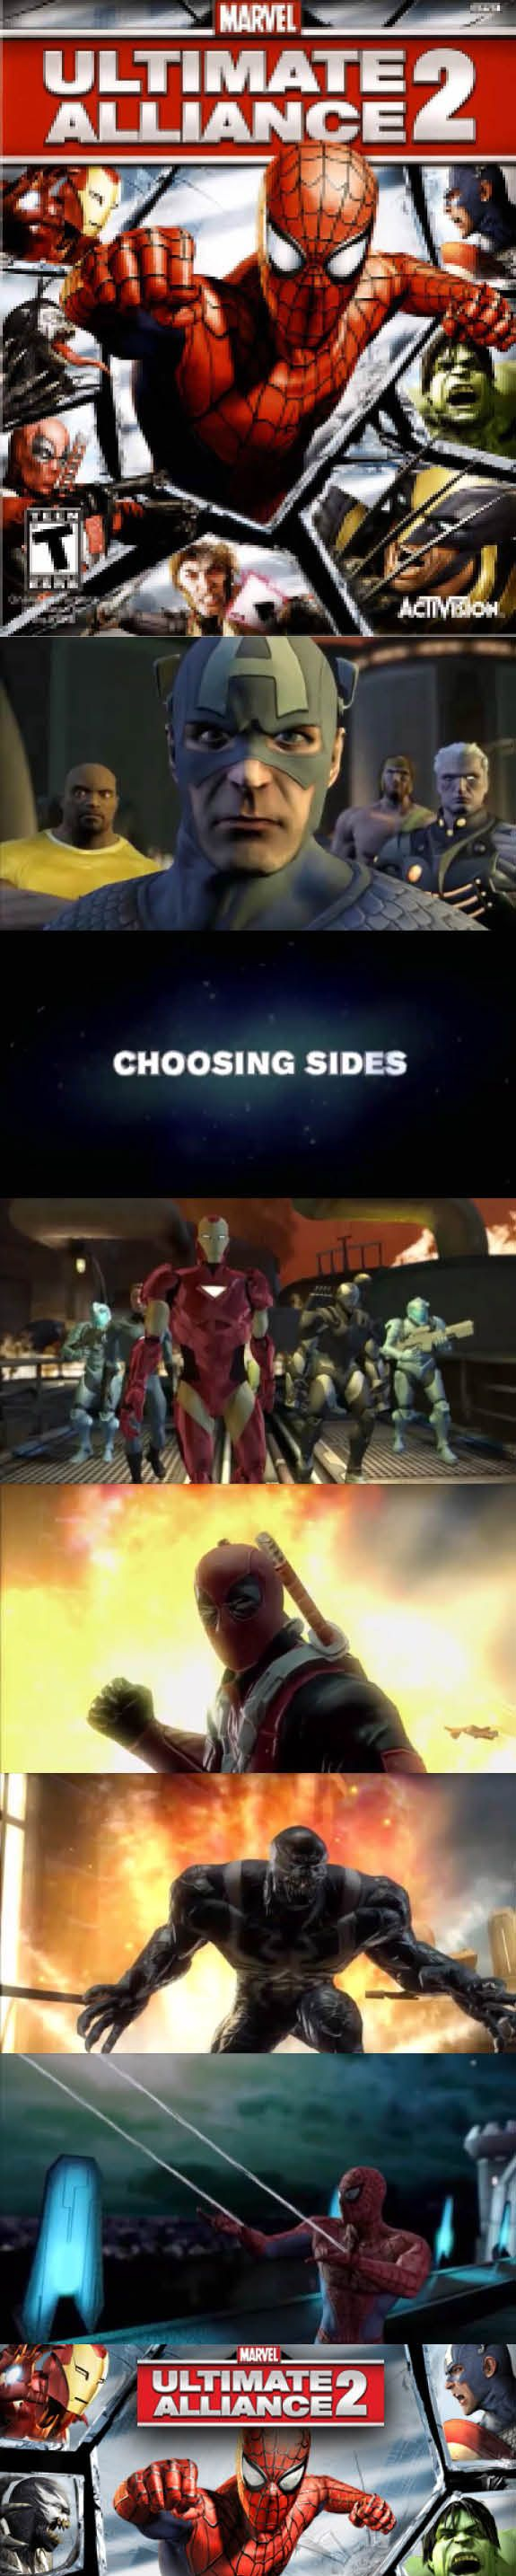 #SuperHeroGamer In #Marvel Ultimate Alliance 2 you have to choose a side between #Ironman and #CaptainAmerica http://www.levelgamingground.com/marvel-ultimate-alliance-2-review.html